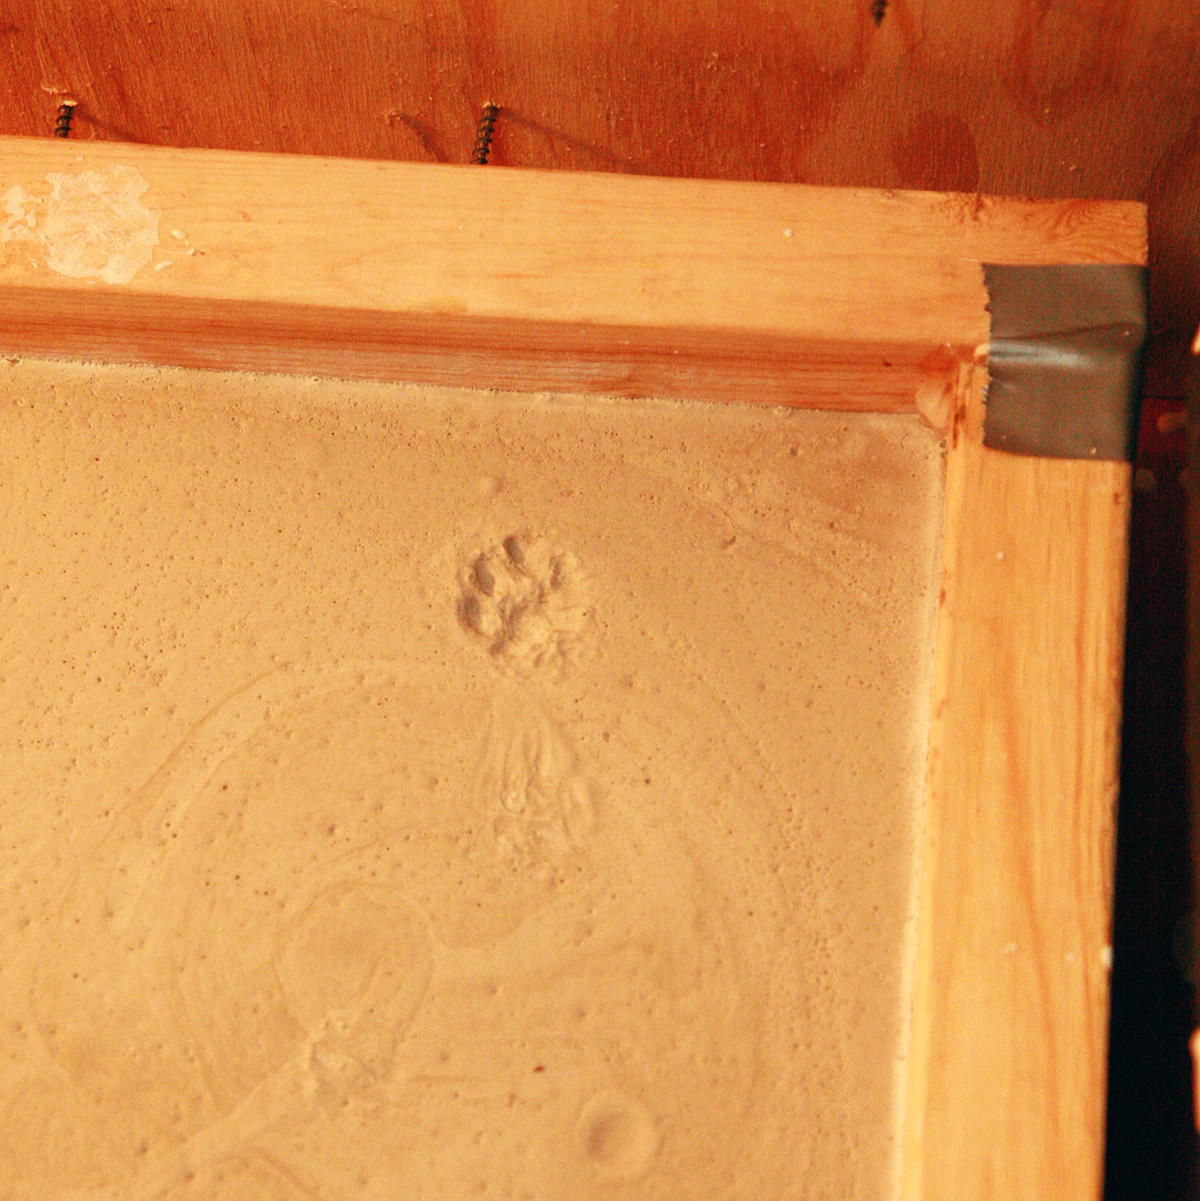 A close up view of a portion of the plaster mold, with a cat's paw print in the plaster.